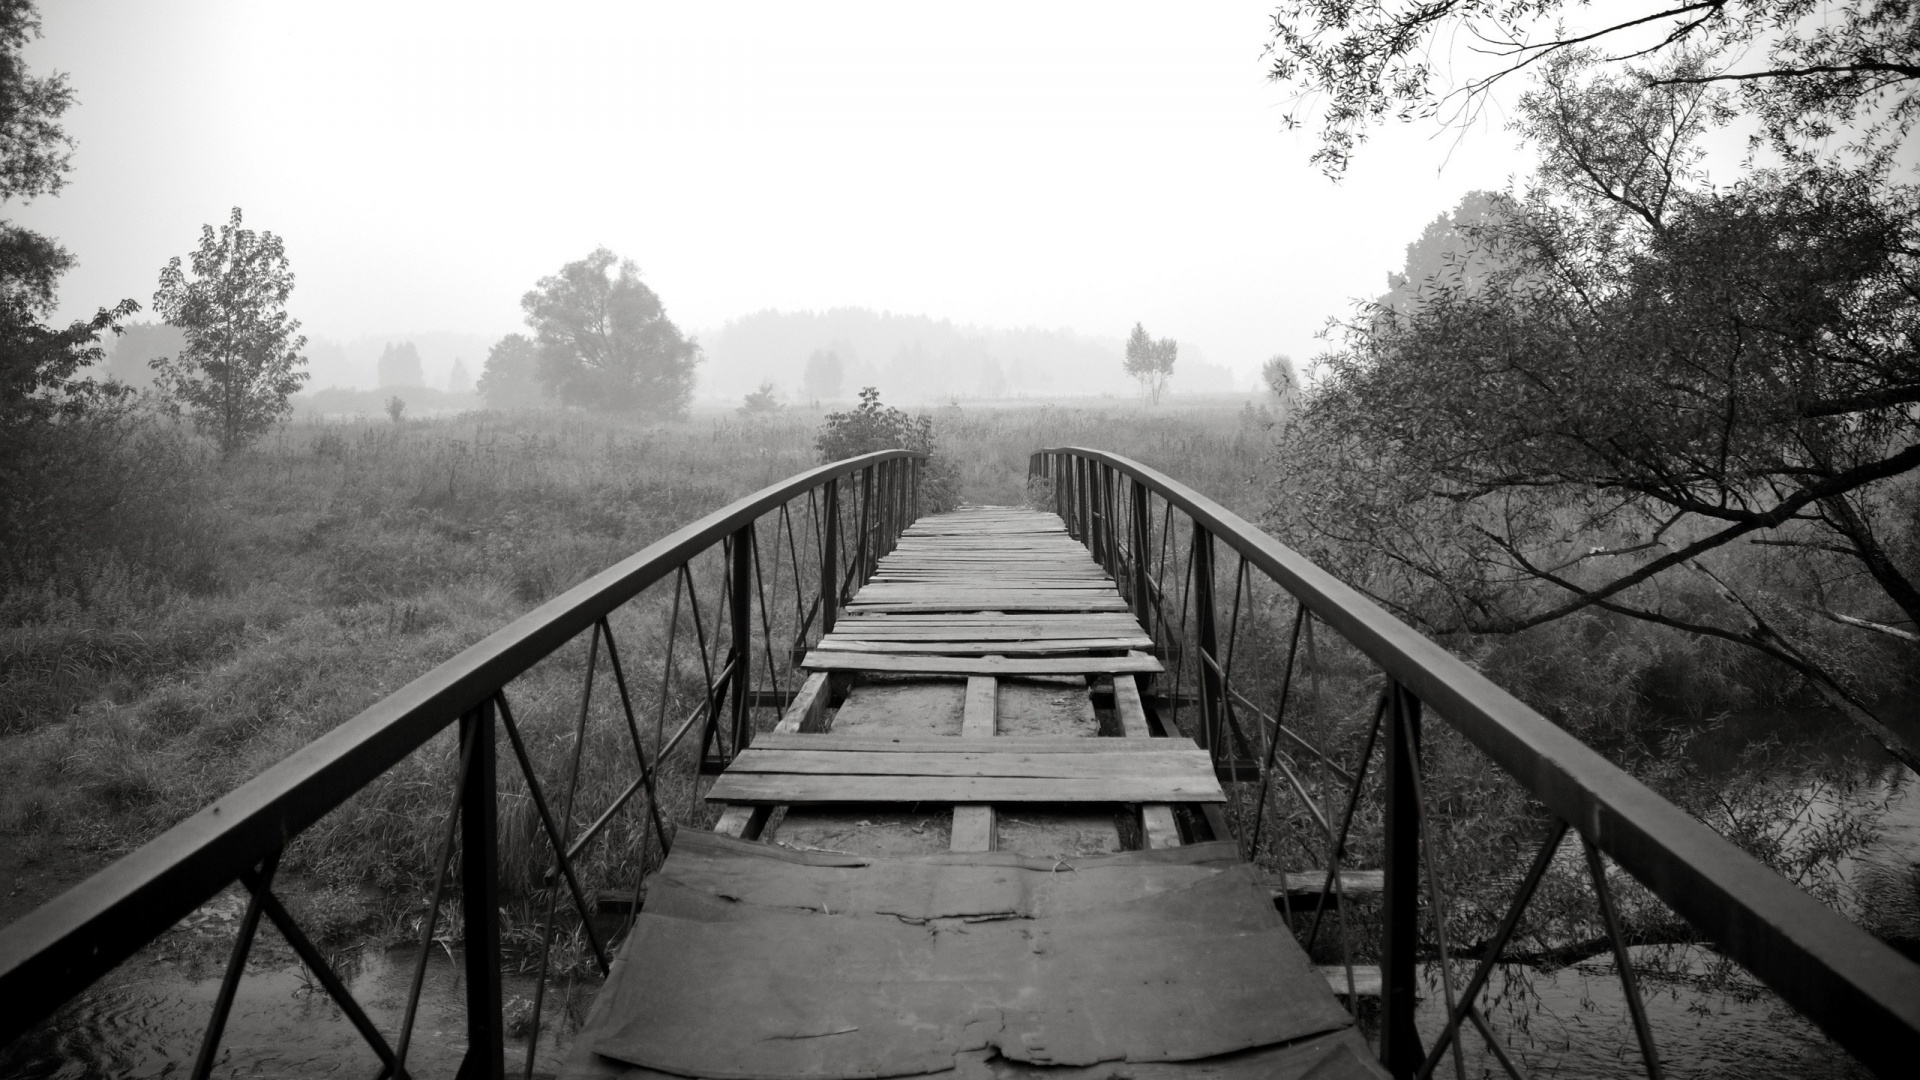 1920x1080 Black White Bridge Scenery Desktop Pc And Mac Wallpaper